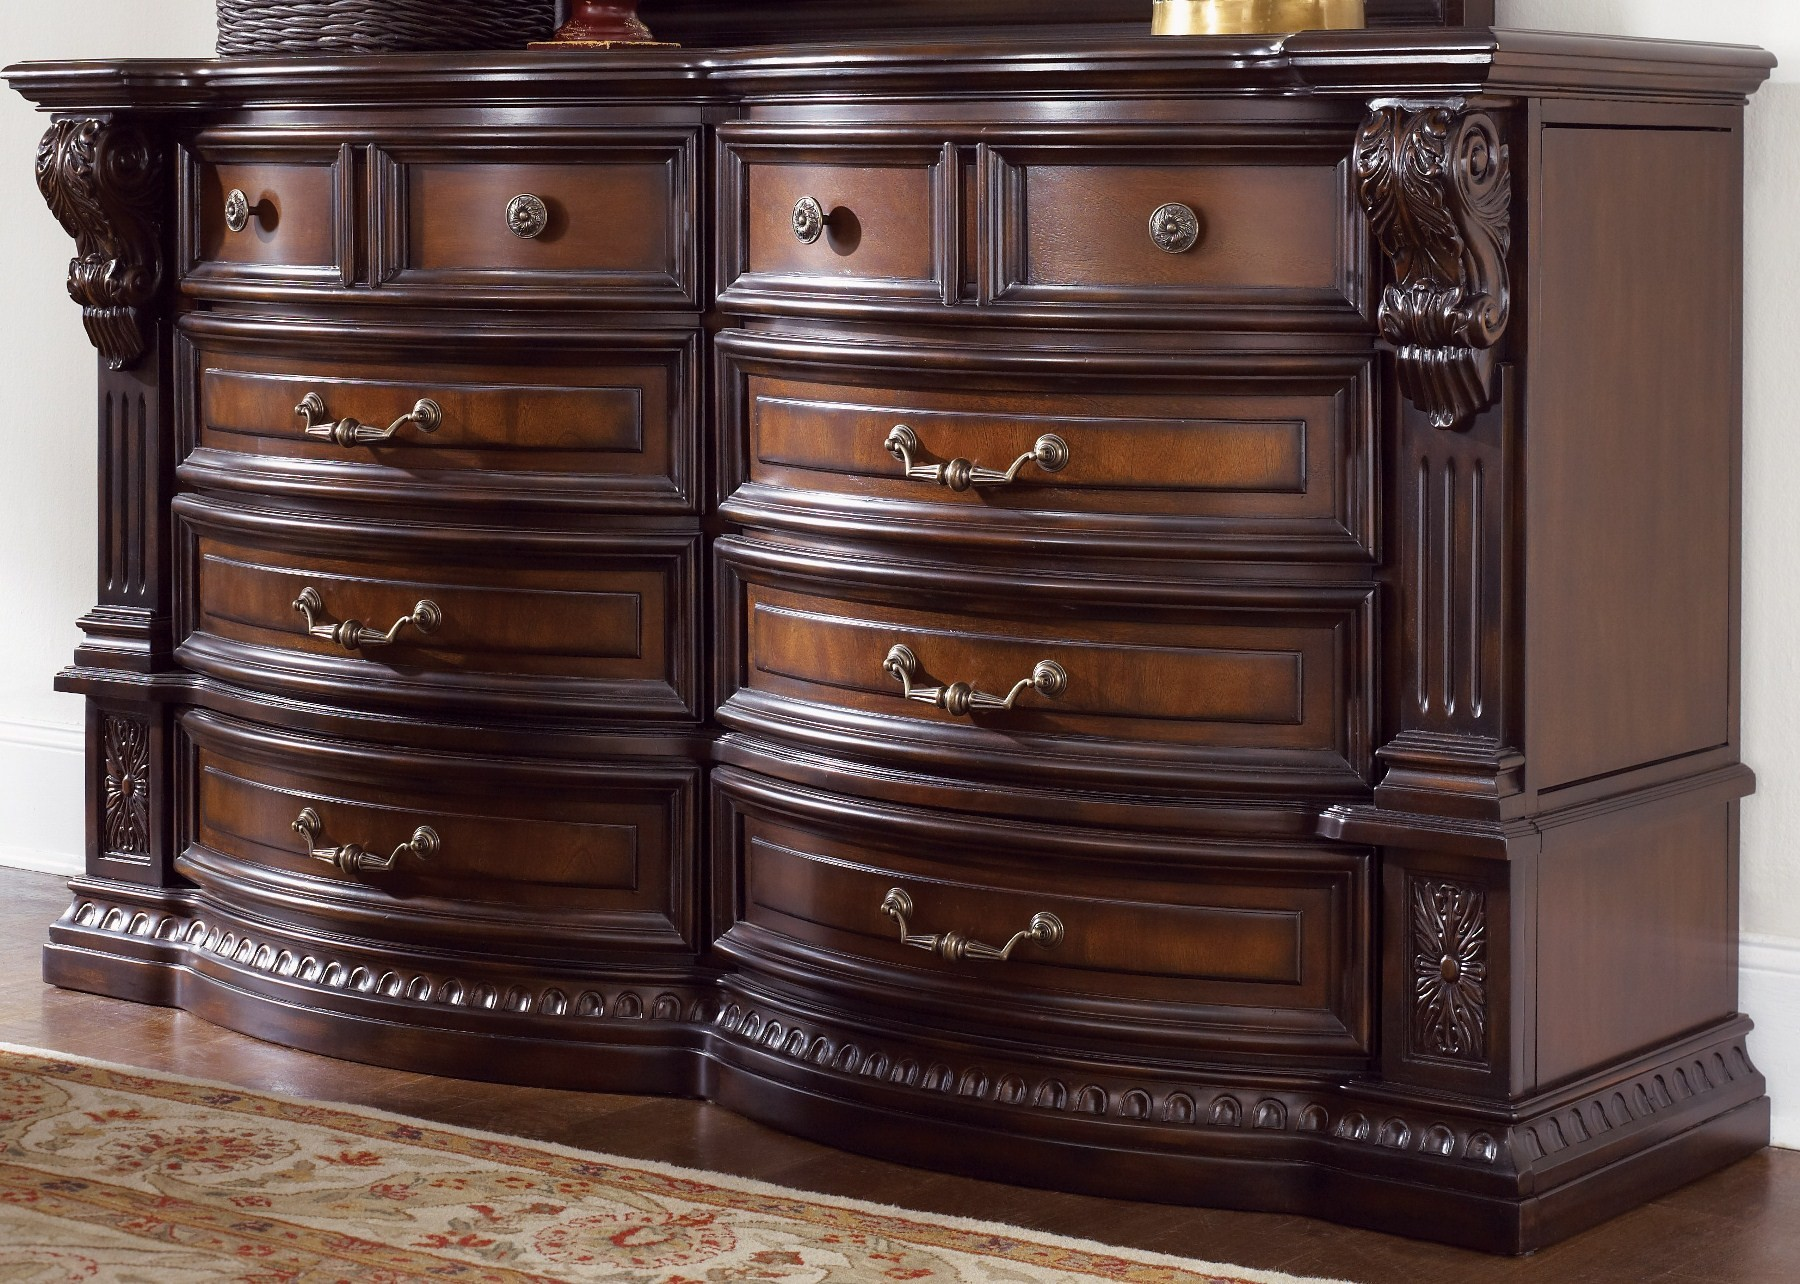 Fairmont Designs Grand Estates Dresser C7102 05 Furniture